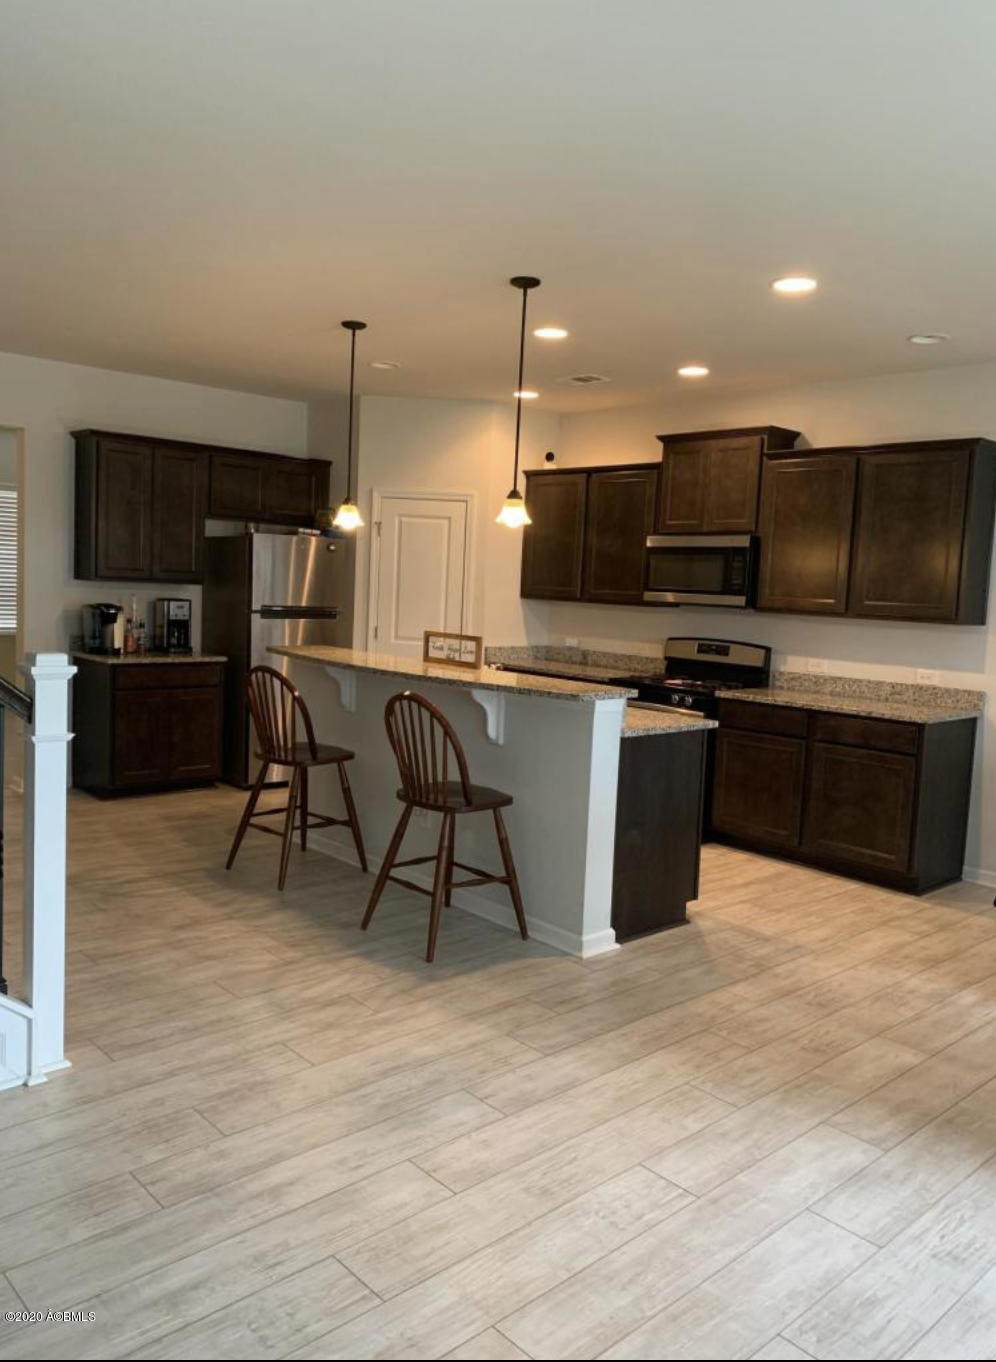 https://bt-photos.global.ssl.fastly.net/beaufortsc/orig_boomver_1_168030-2.jpg